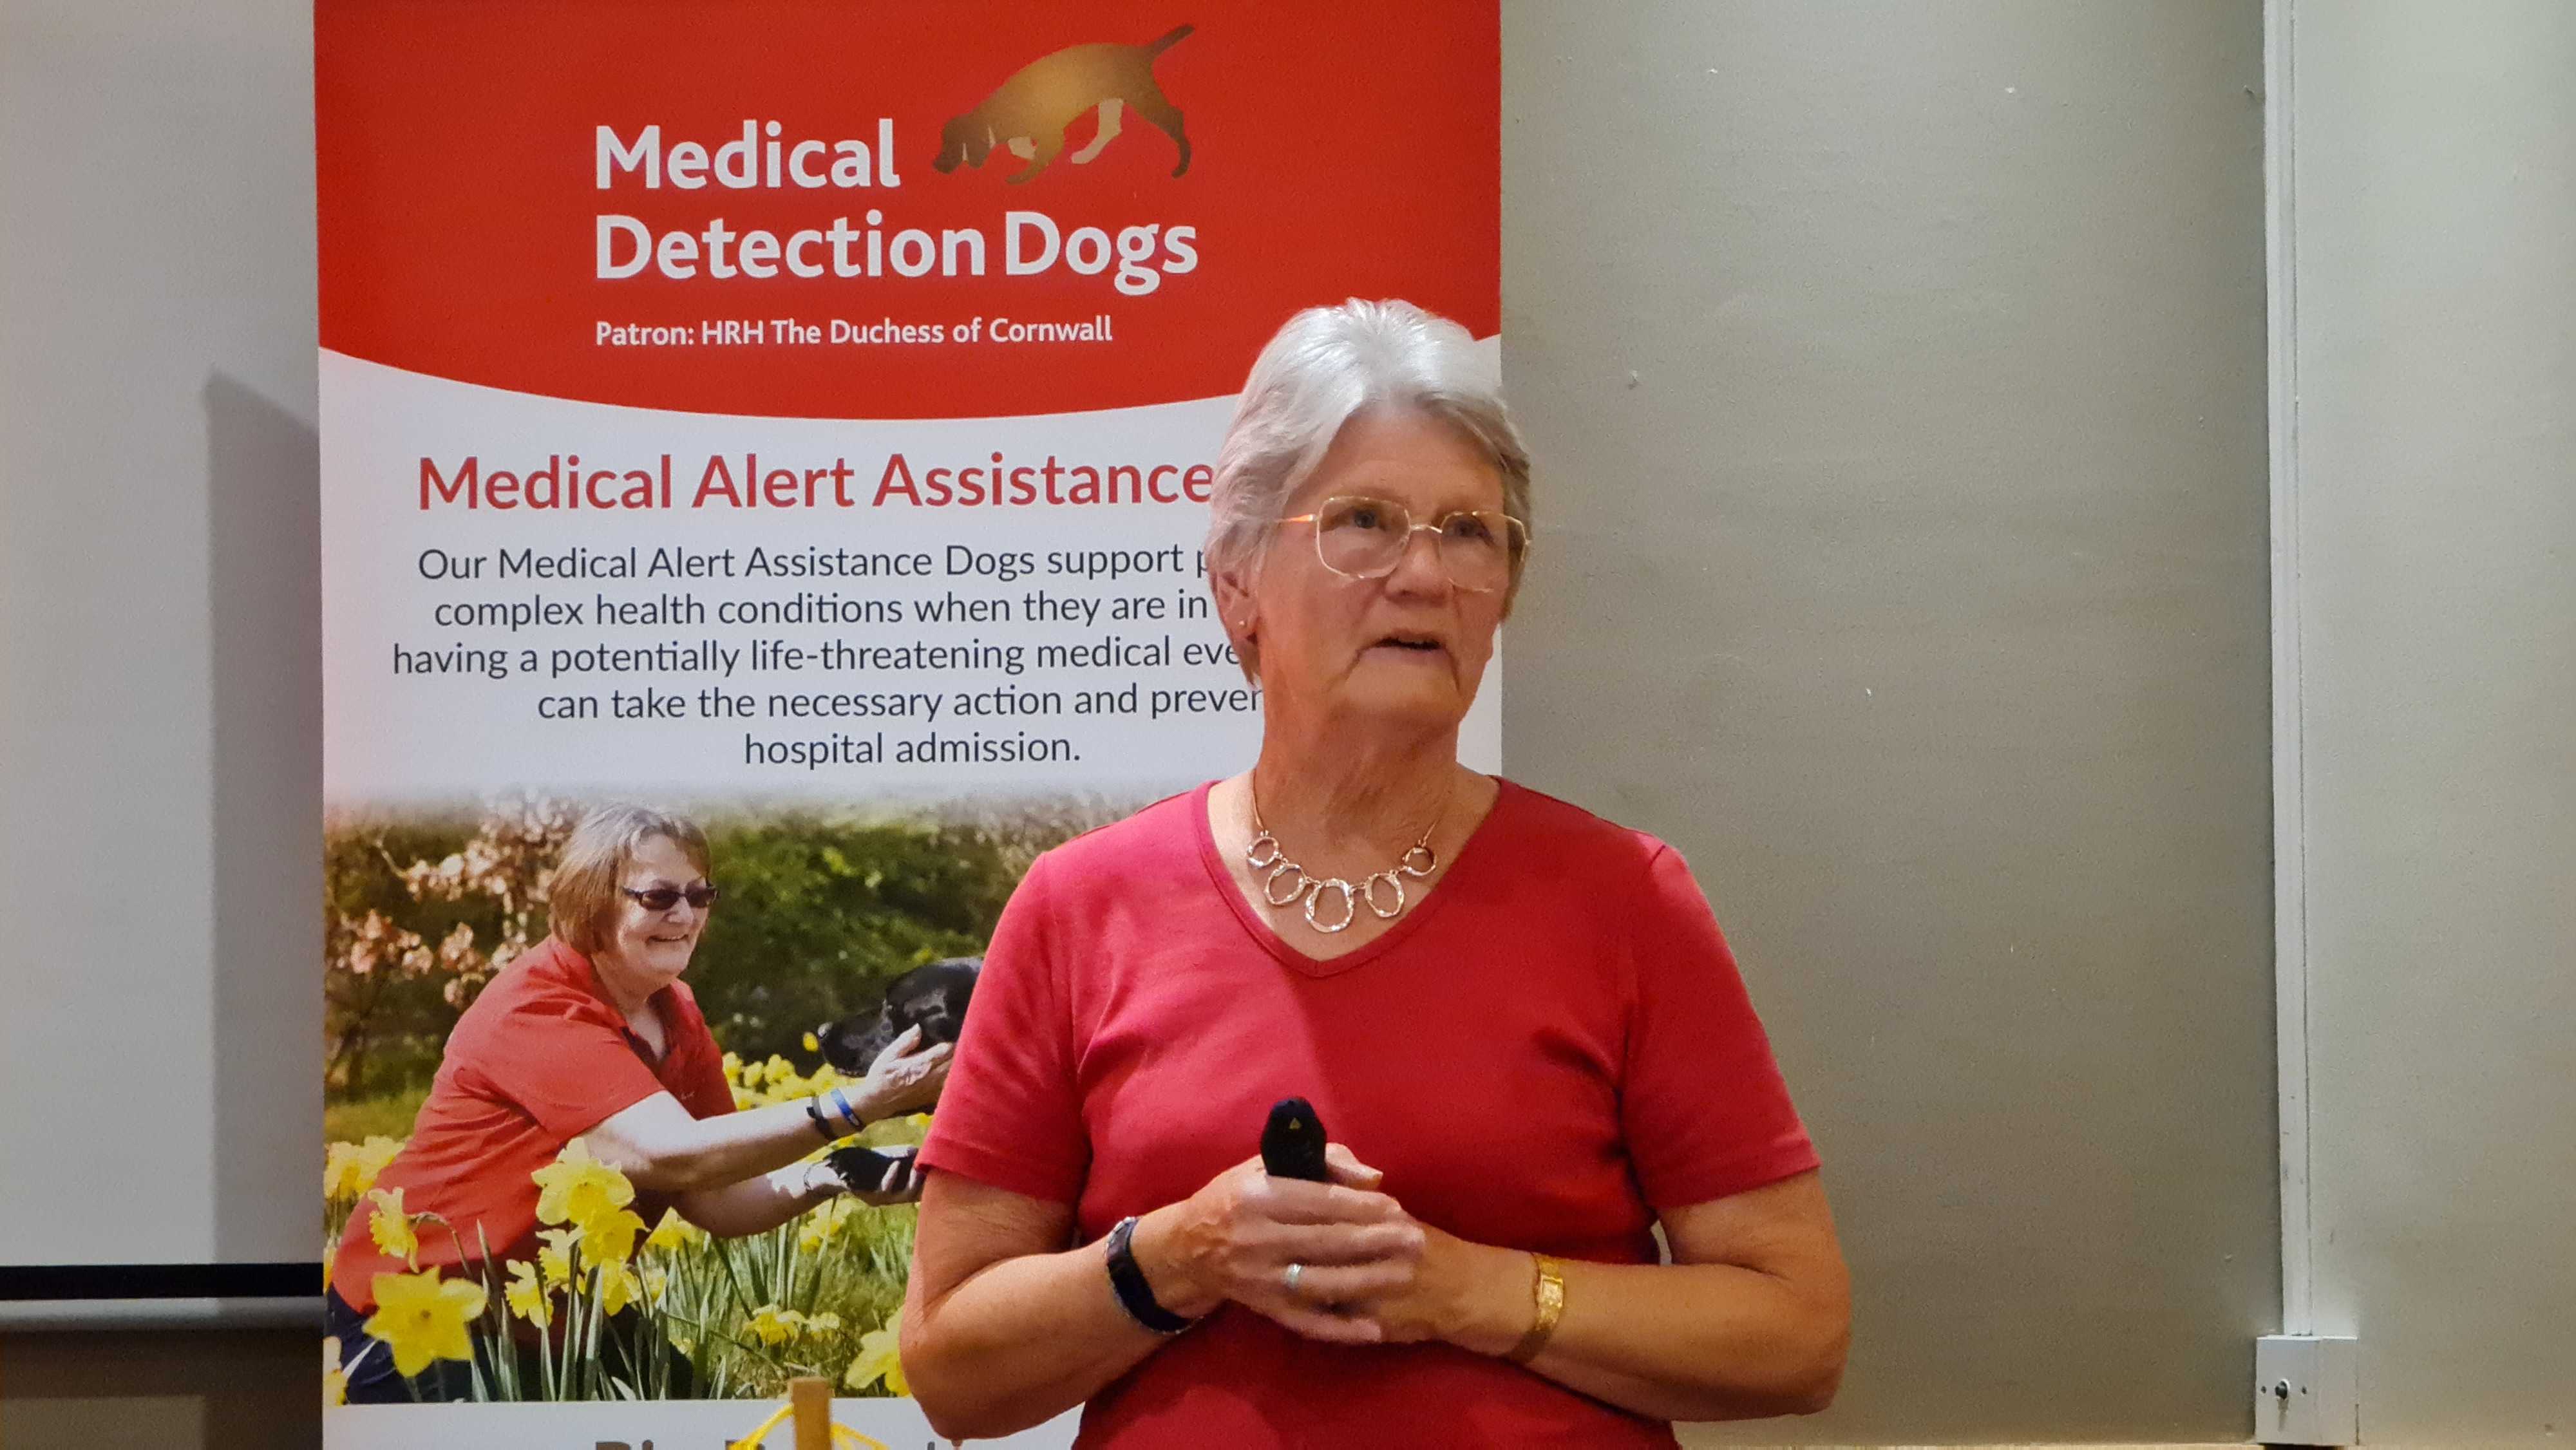 Danielle talks about the fantastic Medical detection dogs